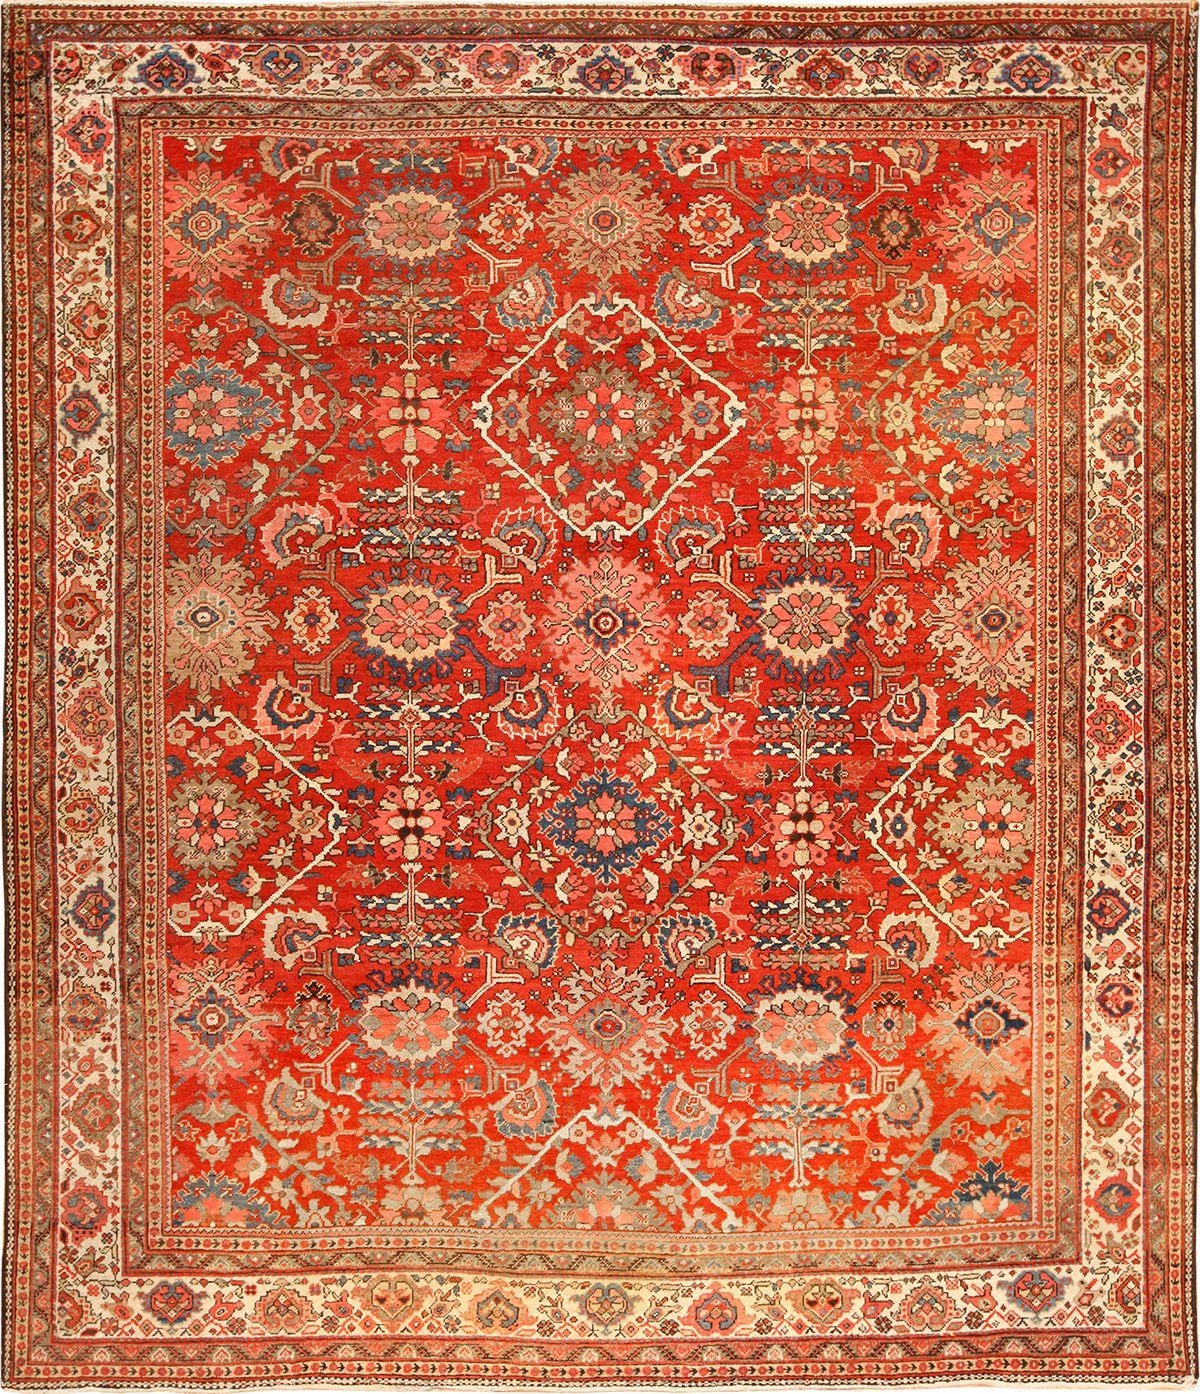 Antique Red Sultanabad Persian Rug 49337 Persian Rug Red Persian Rug Rugs